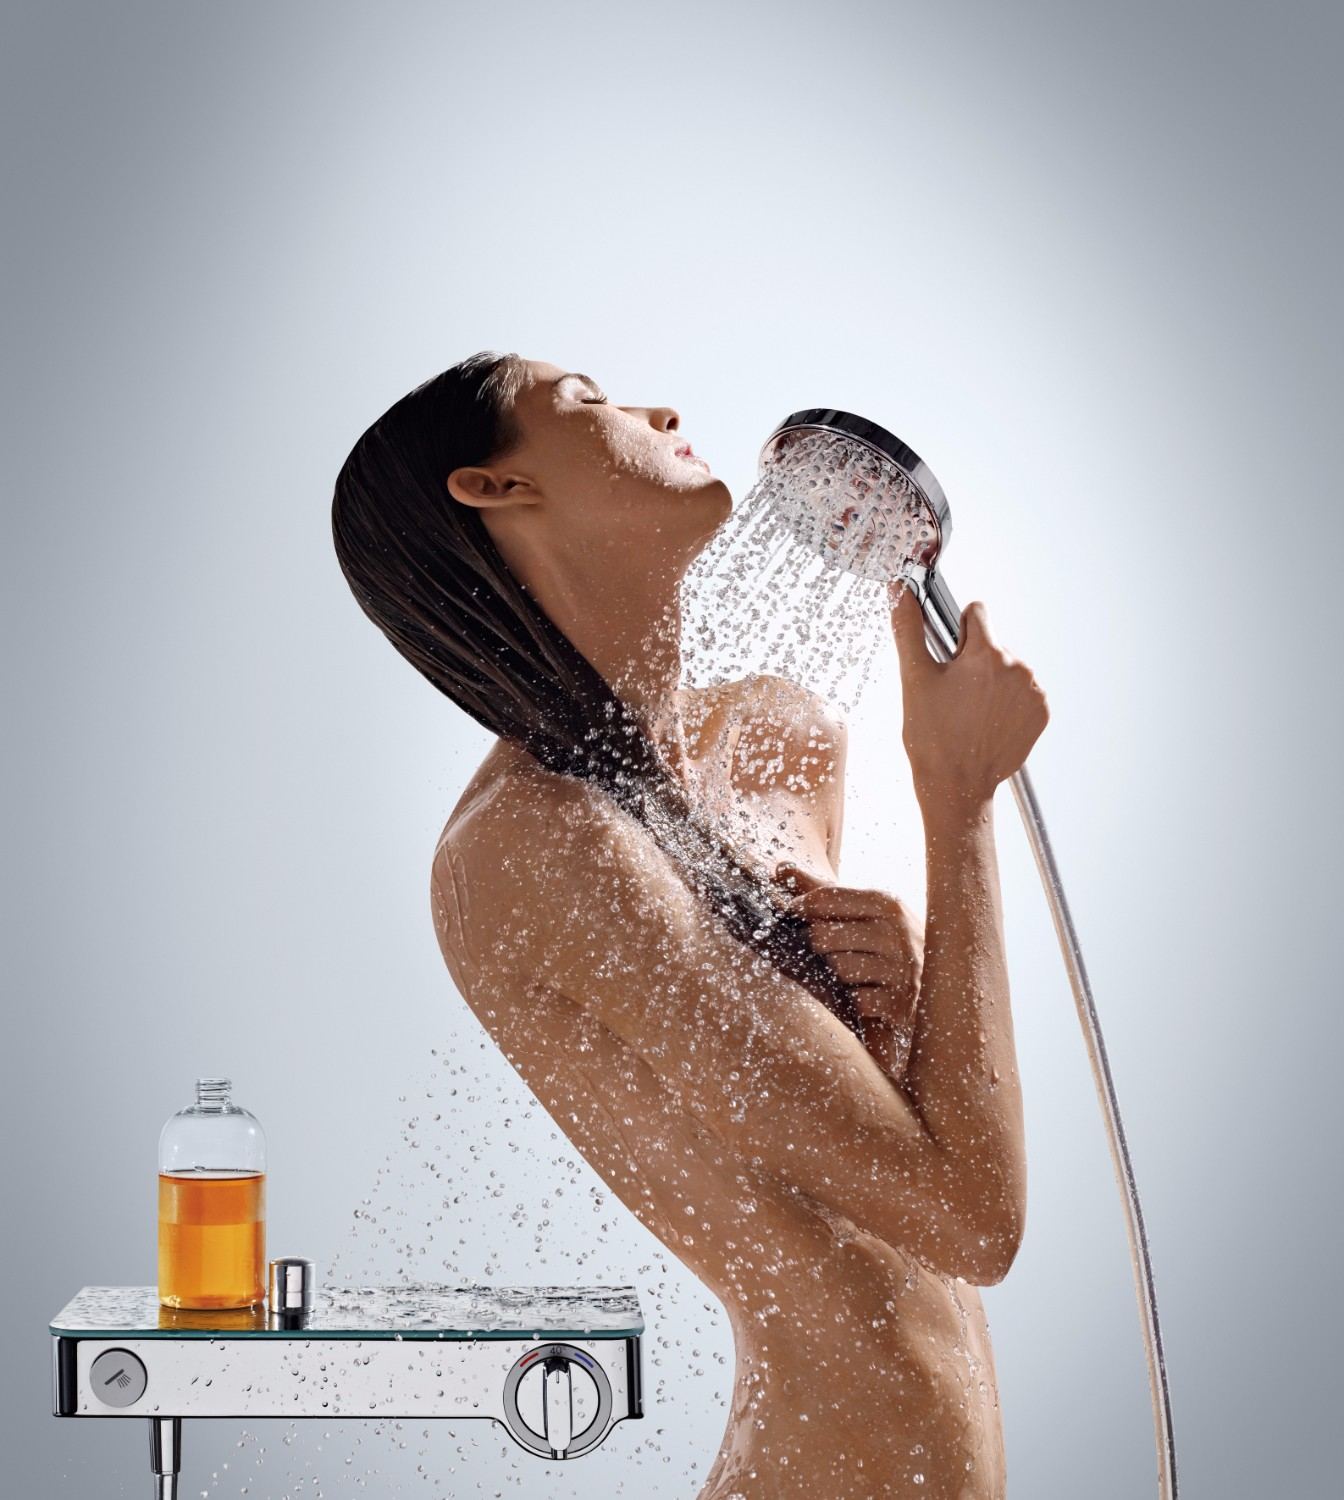 Hansgrohe Raindance Select: intuitive, innovative water control - hand shower demonstration